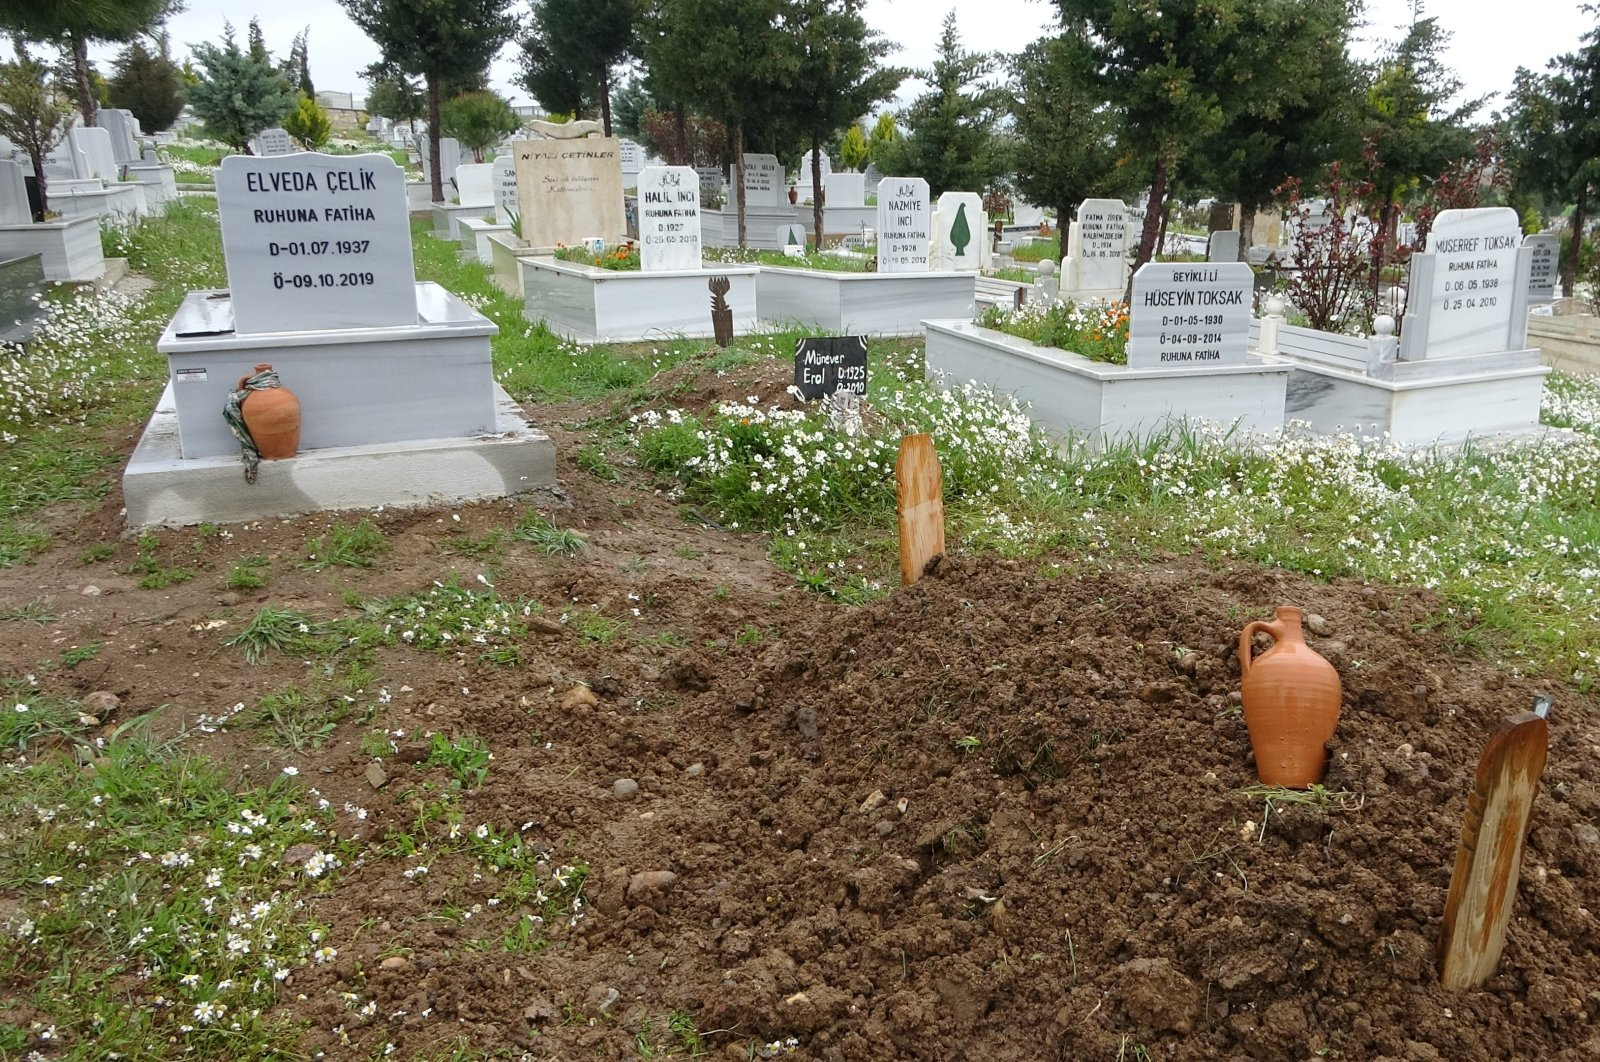 A view of the grave where the man thought to be Recep Çelik was buried, in Çanakkale, western Turkey, April 8, 2021. (İHA PHOTO)